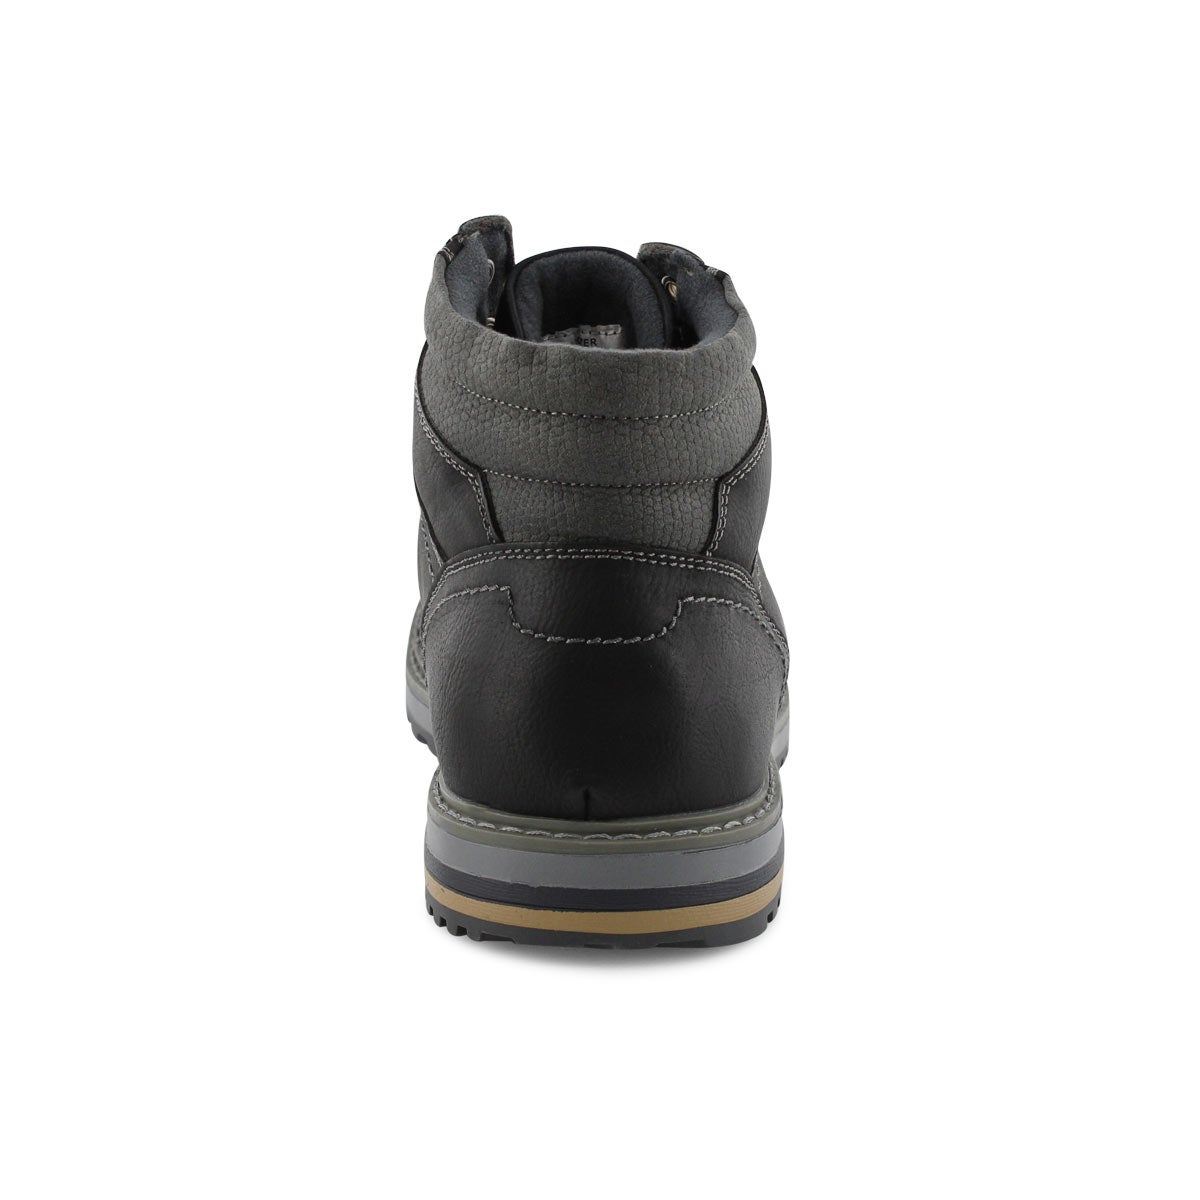 Mns Bulldozer black lace up ankle boot